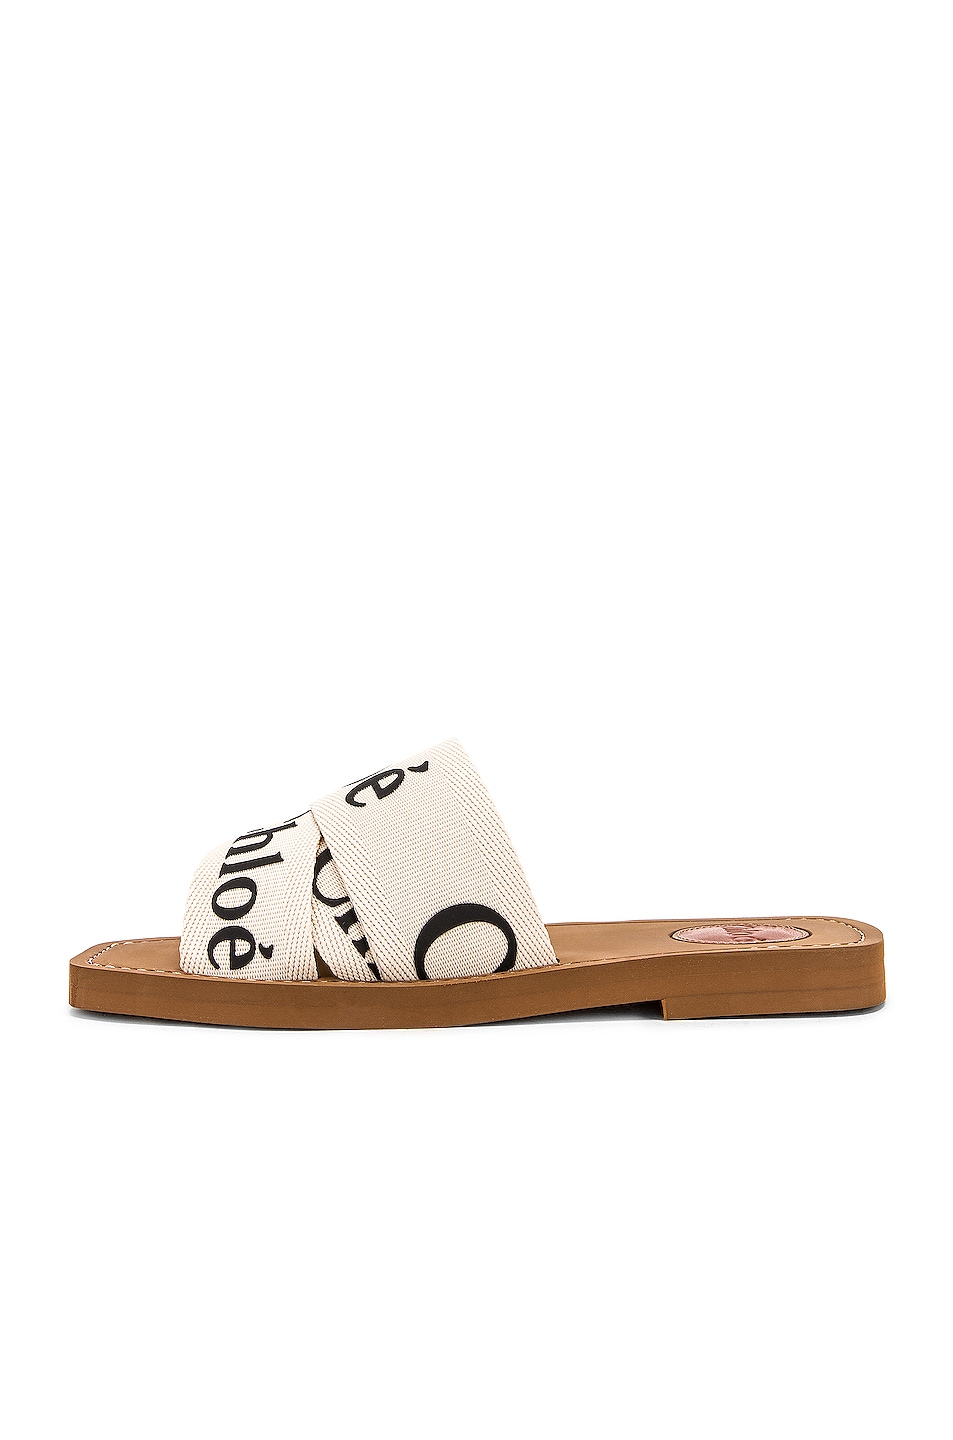 Image 5 of Chloe Logo Sandals in White